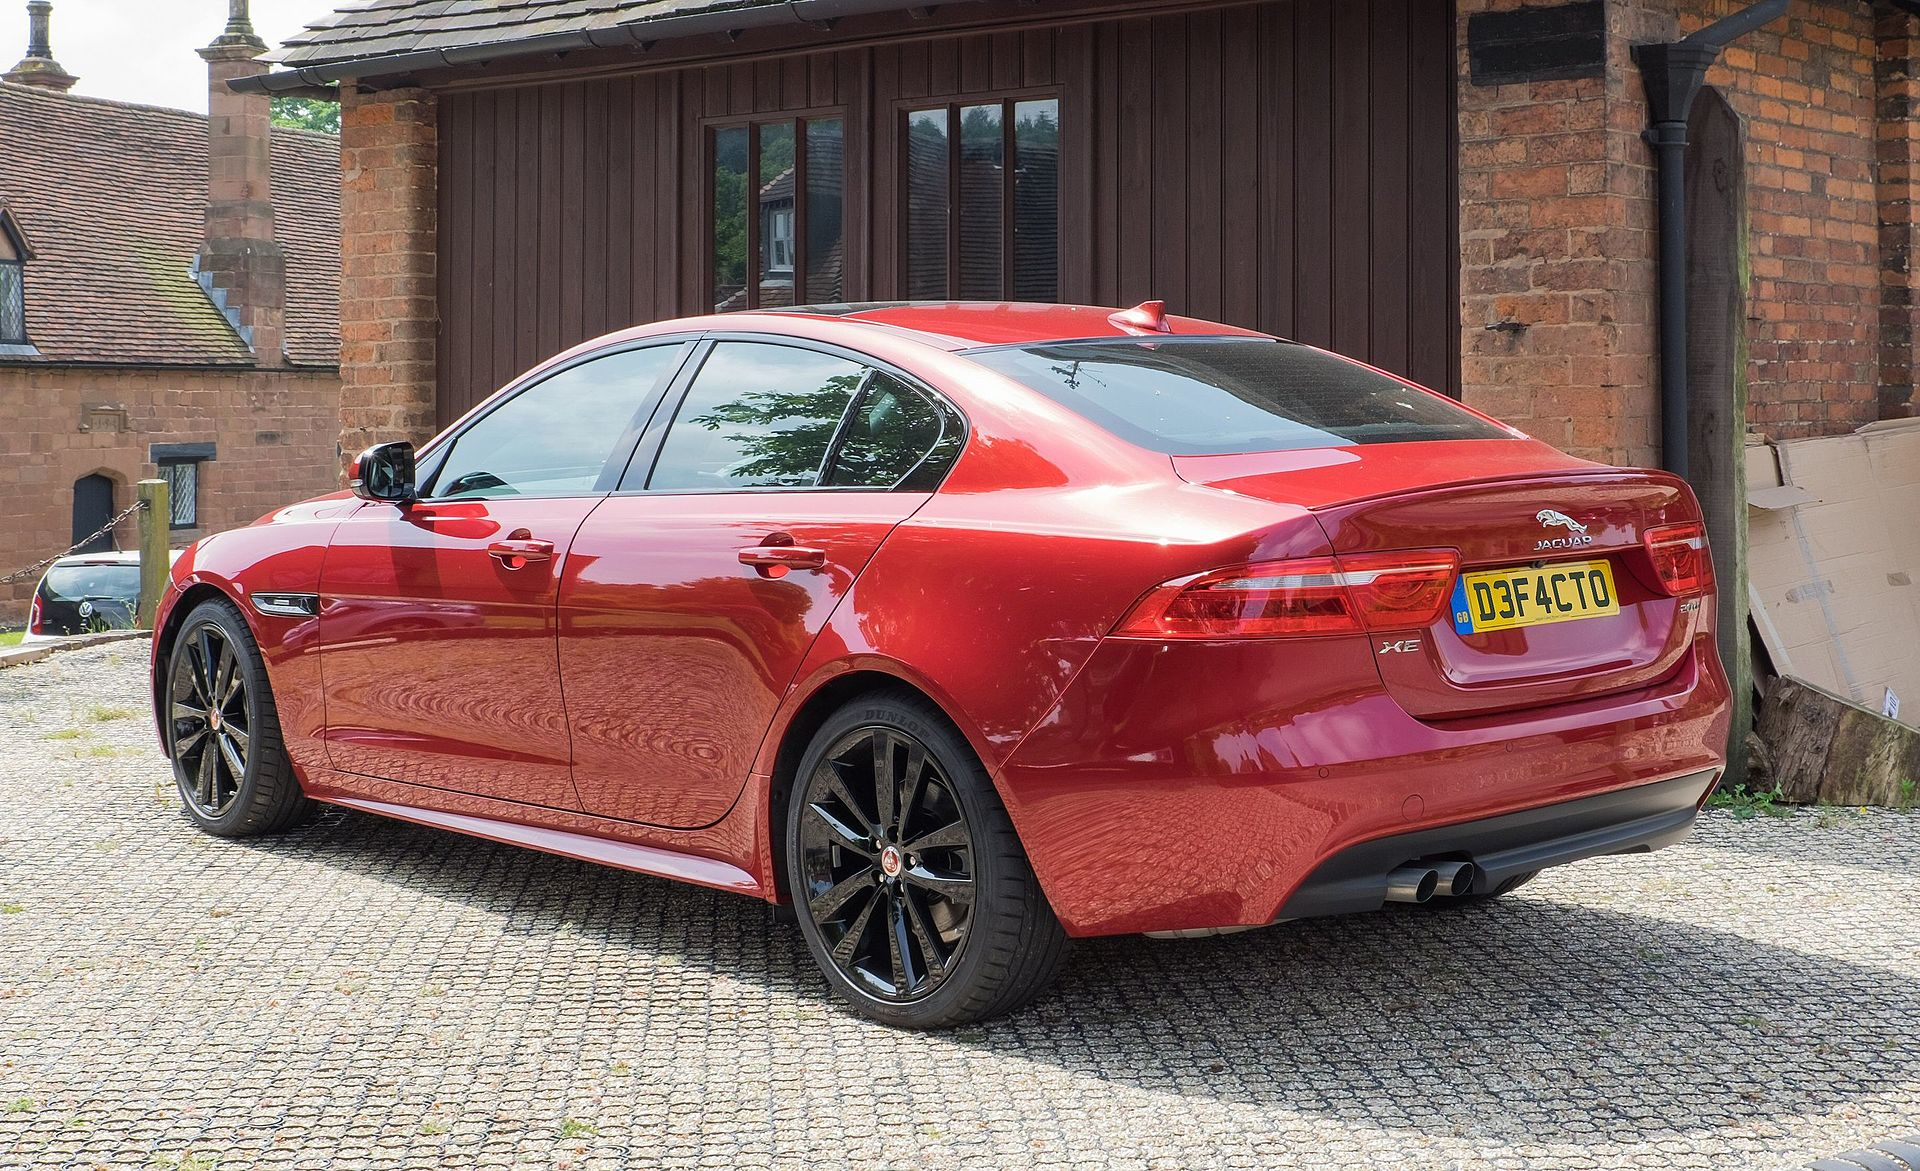 Jaguar XE 25t (US) 2.0t 247hp ($35,725) 20d (UK) 2.0d (diesel) 163hp  ($36,412)